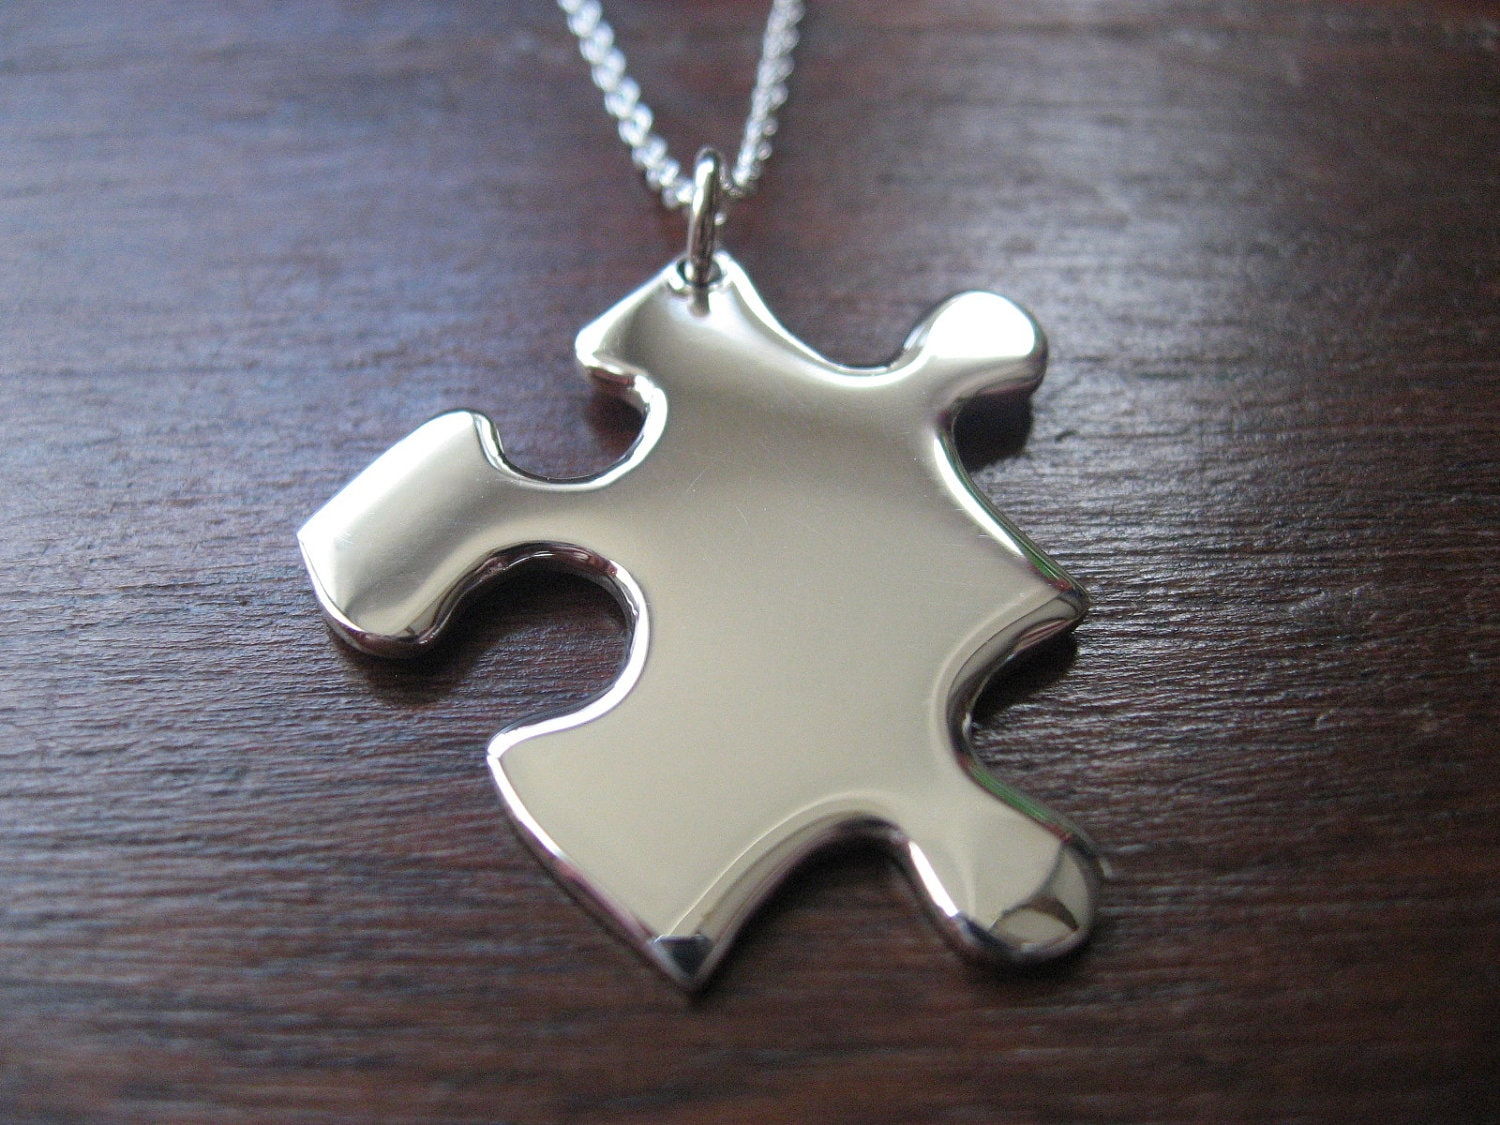 jigsaw puzzle silver pendant necklace